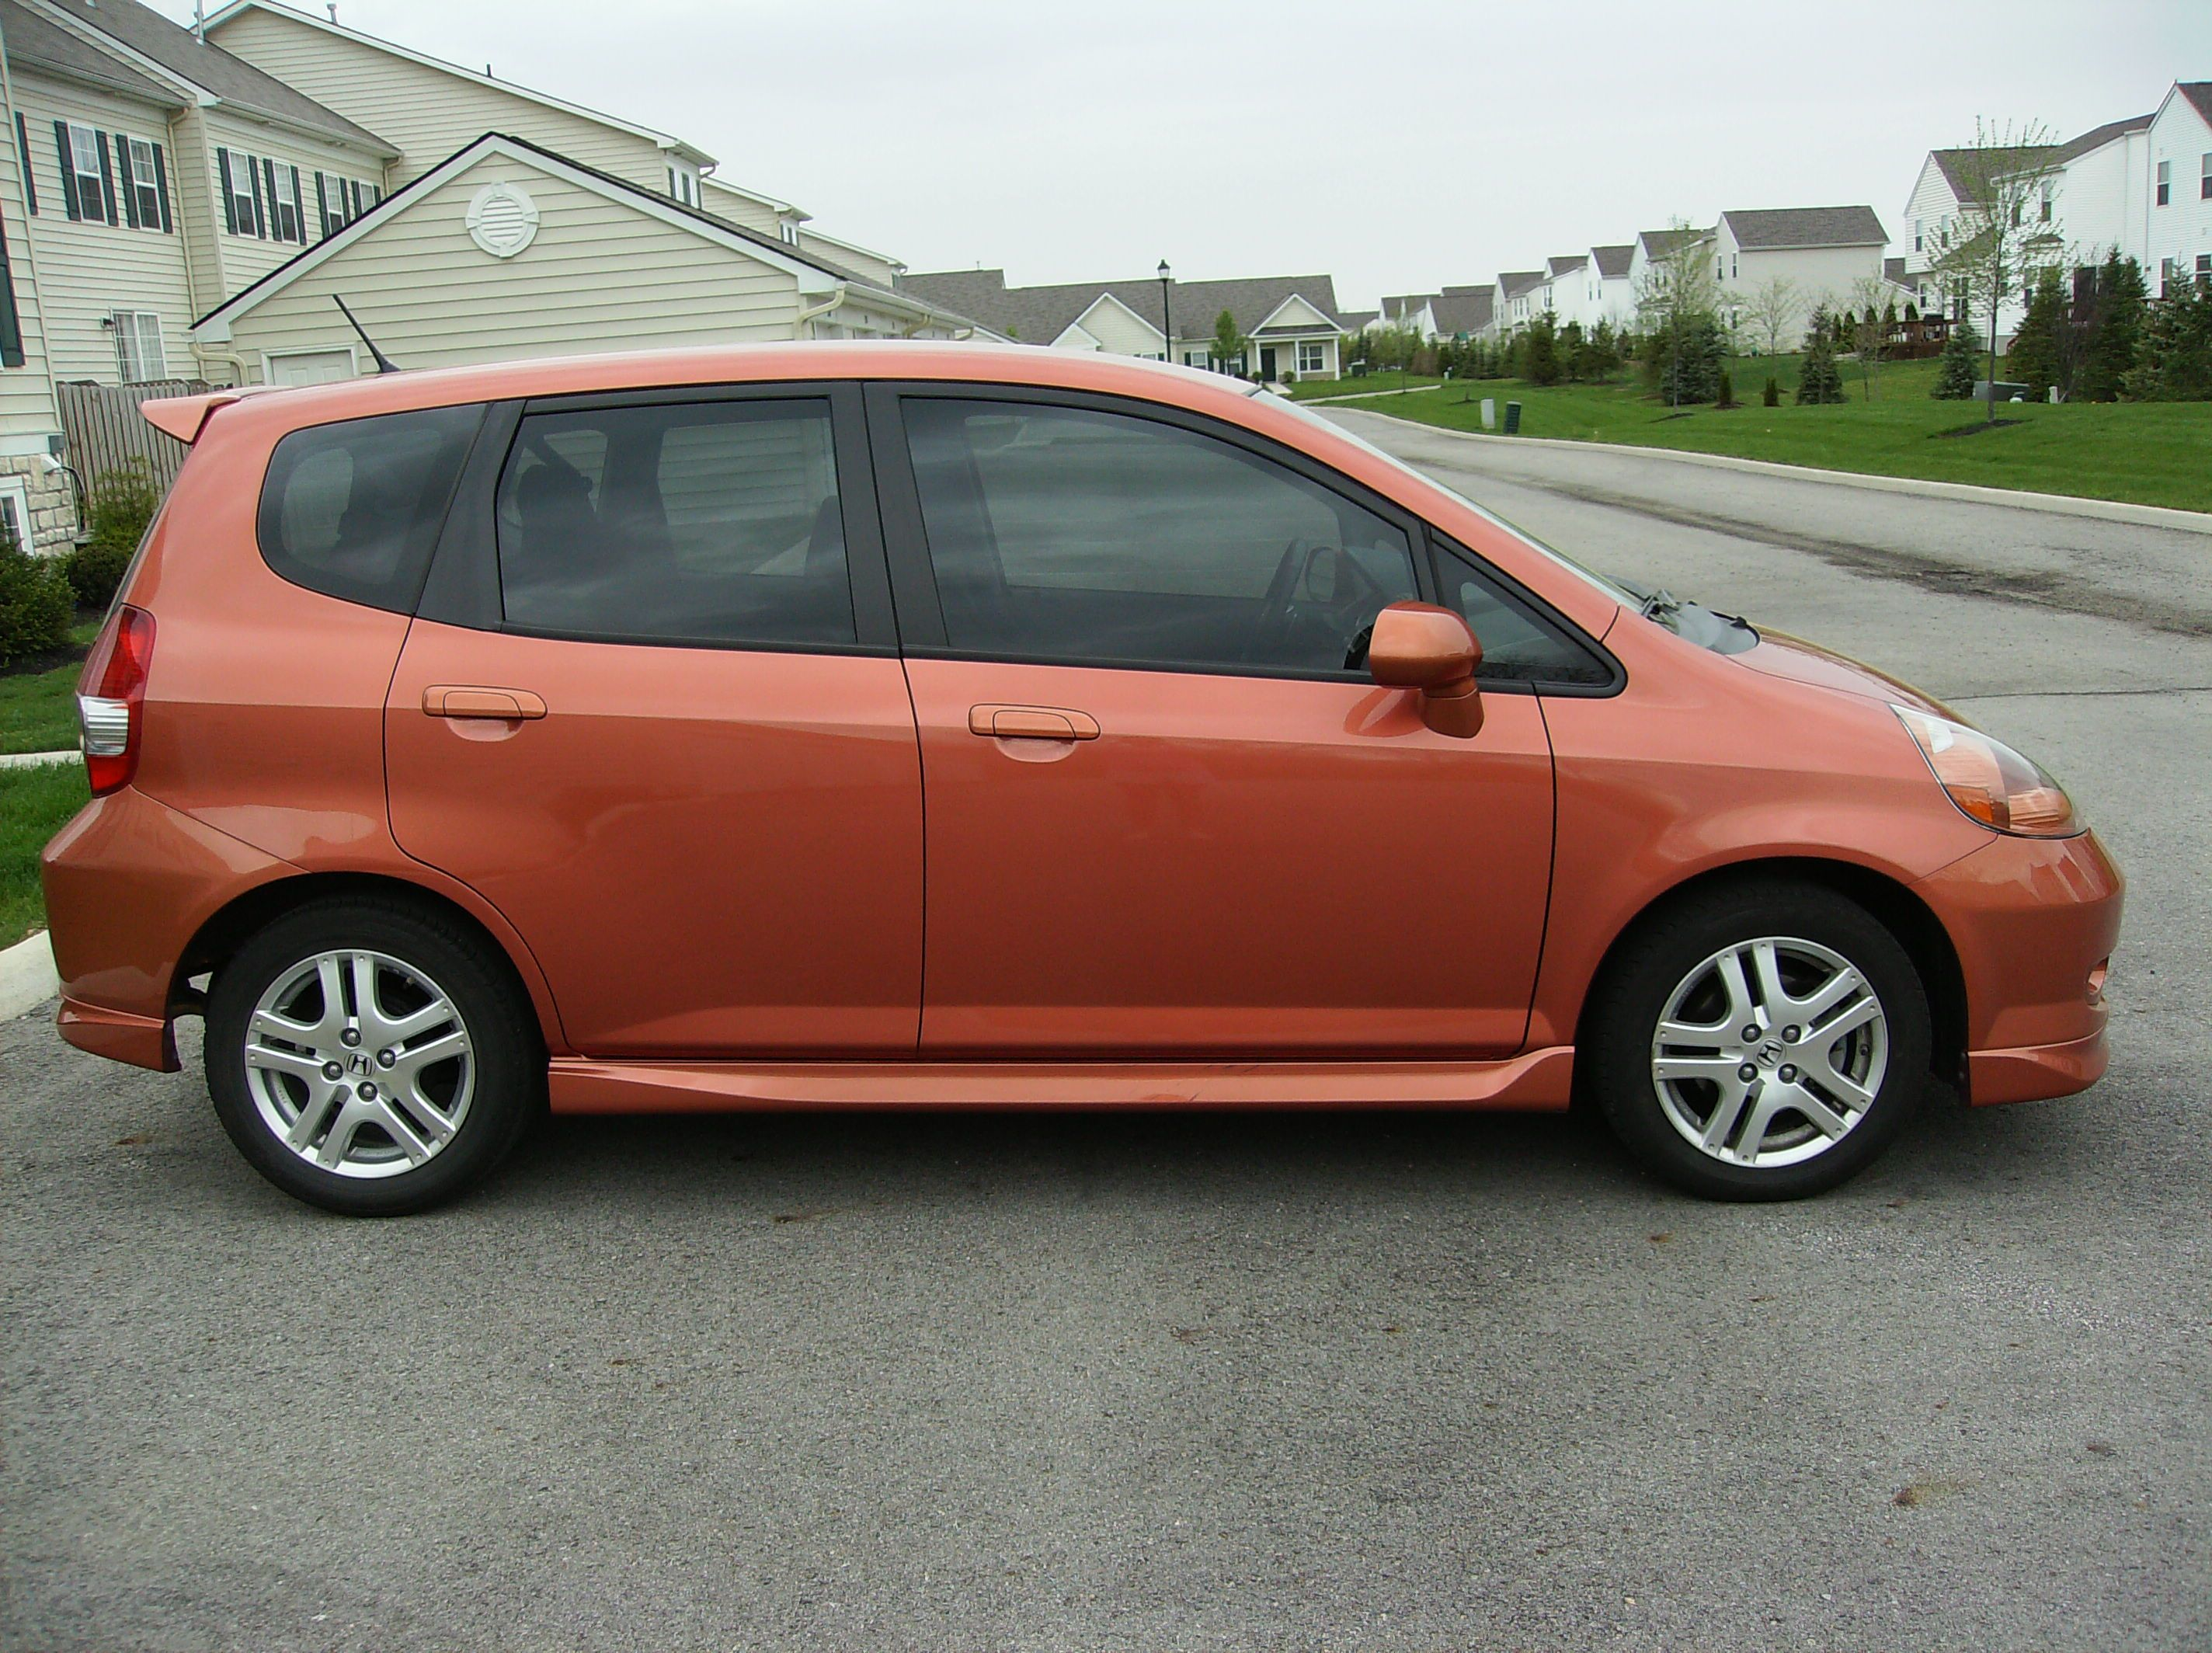 2008 Honda Fit Sport With 35% Tinted Windows